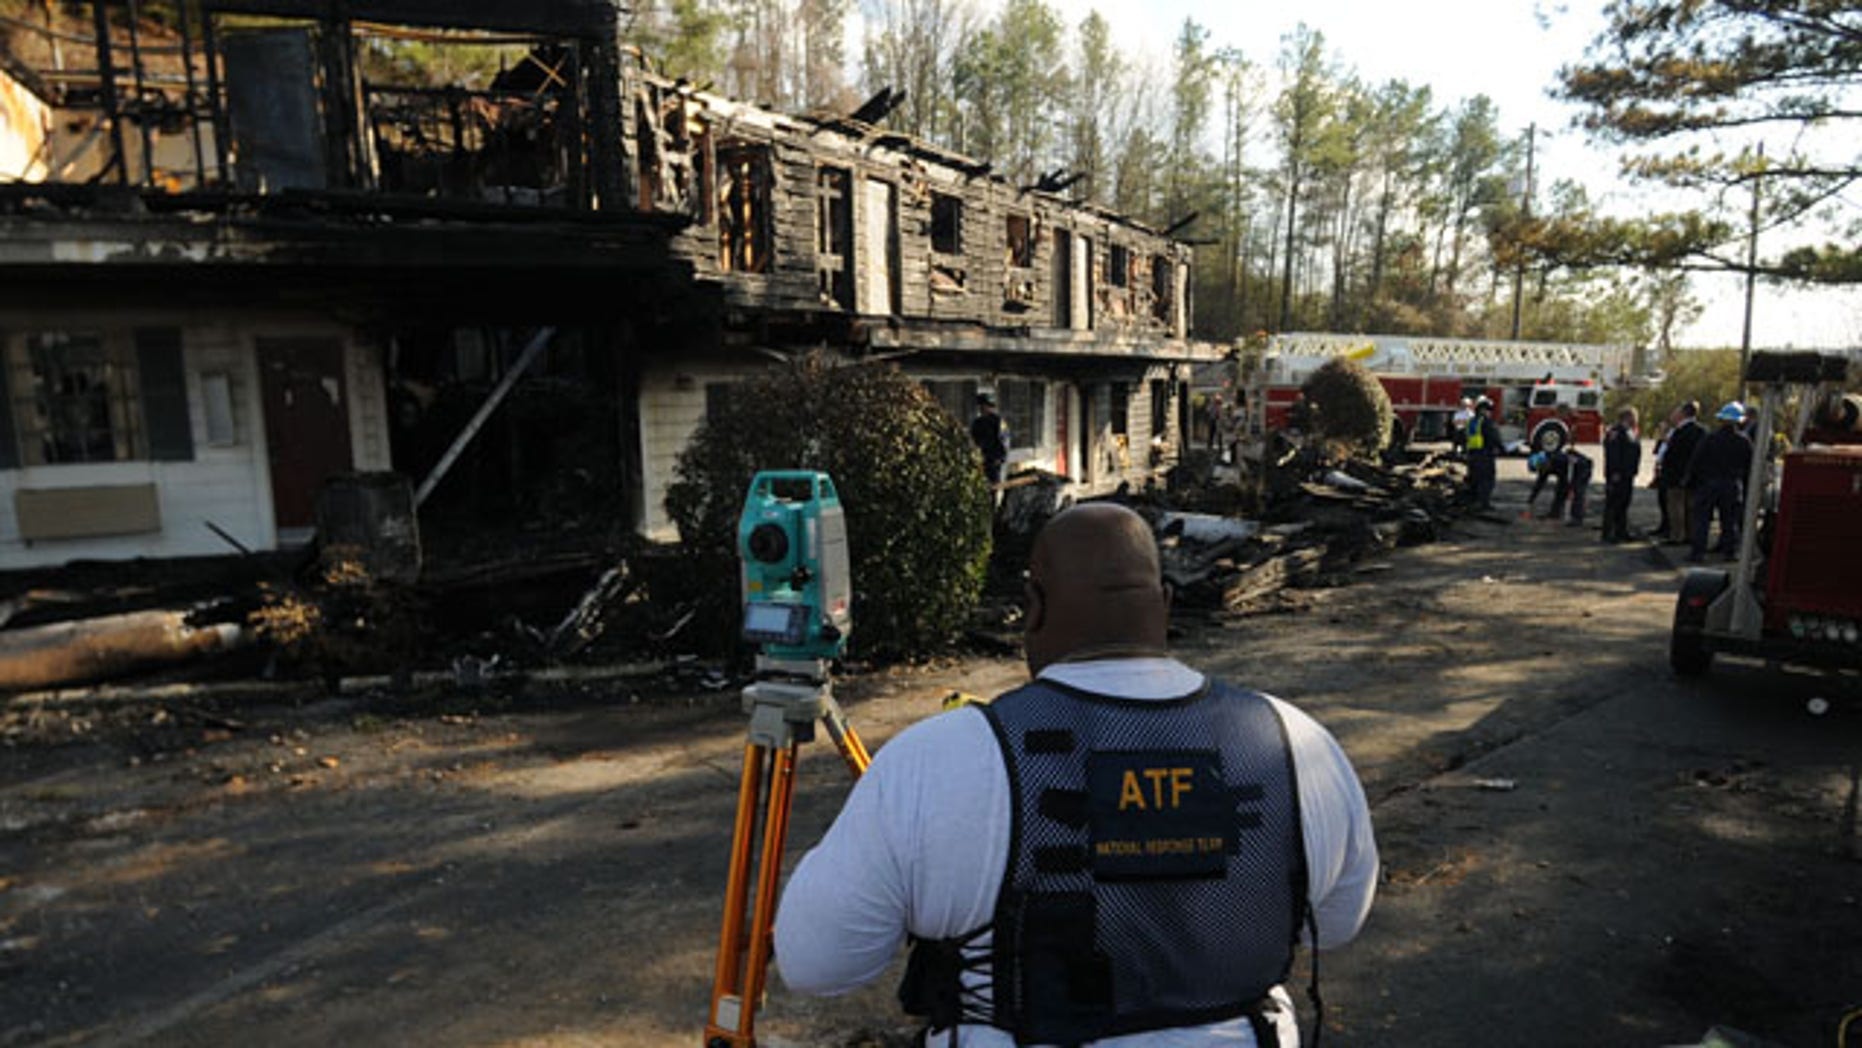 In this Jan. 18, 2010 photo, an investigator with the Bureau of Alcohol, Tobacco, Firearms and Explosives works at the site of a fatal fire which killed four Mississippi college students at the Days Inn in Hoover, Ala. (AP)